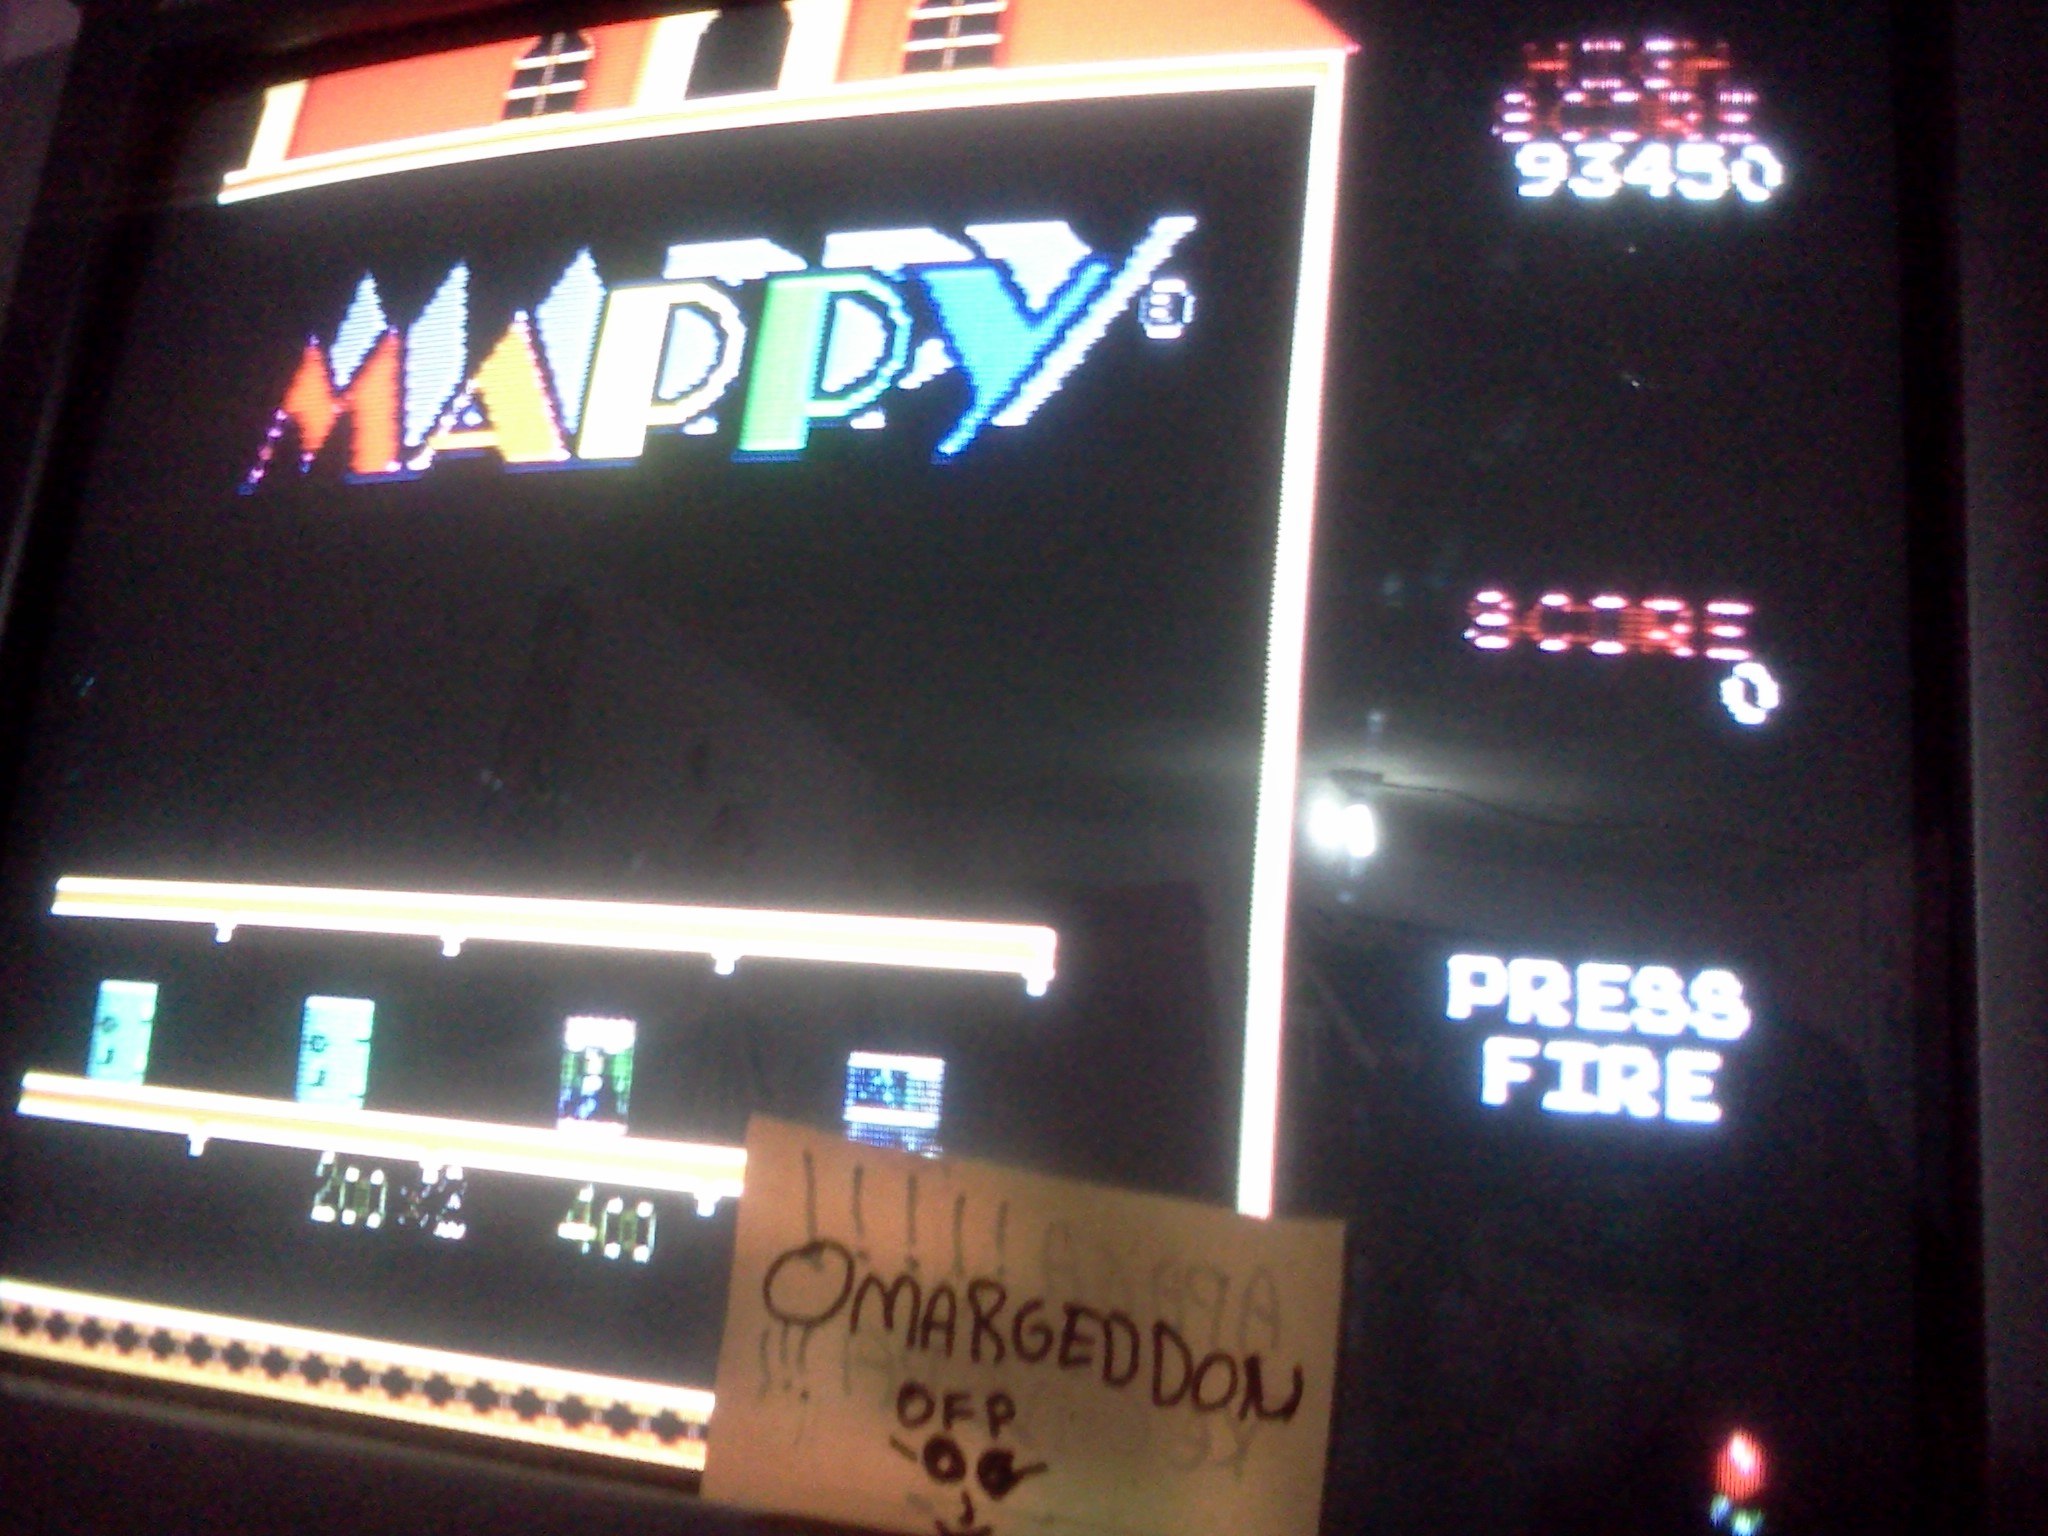 Mappy 93,450 points